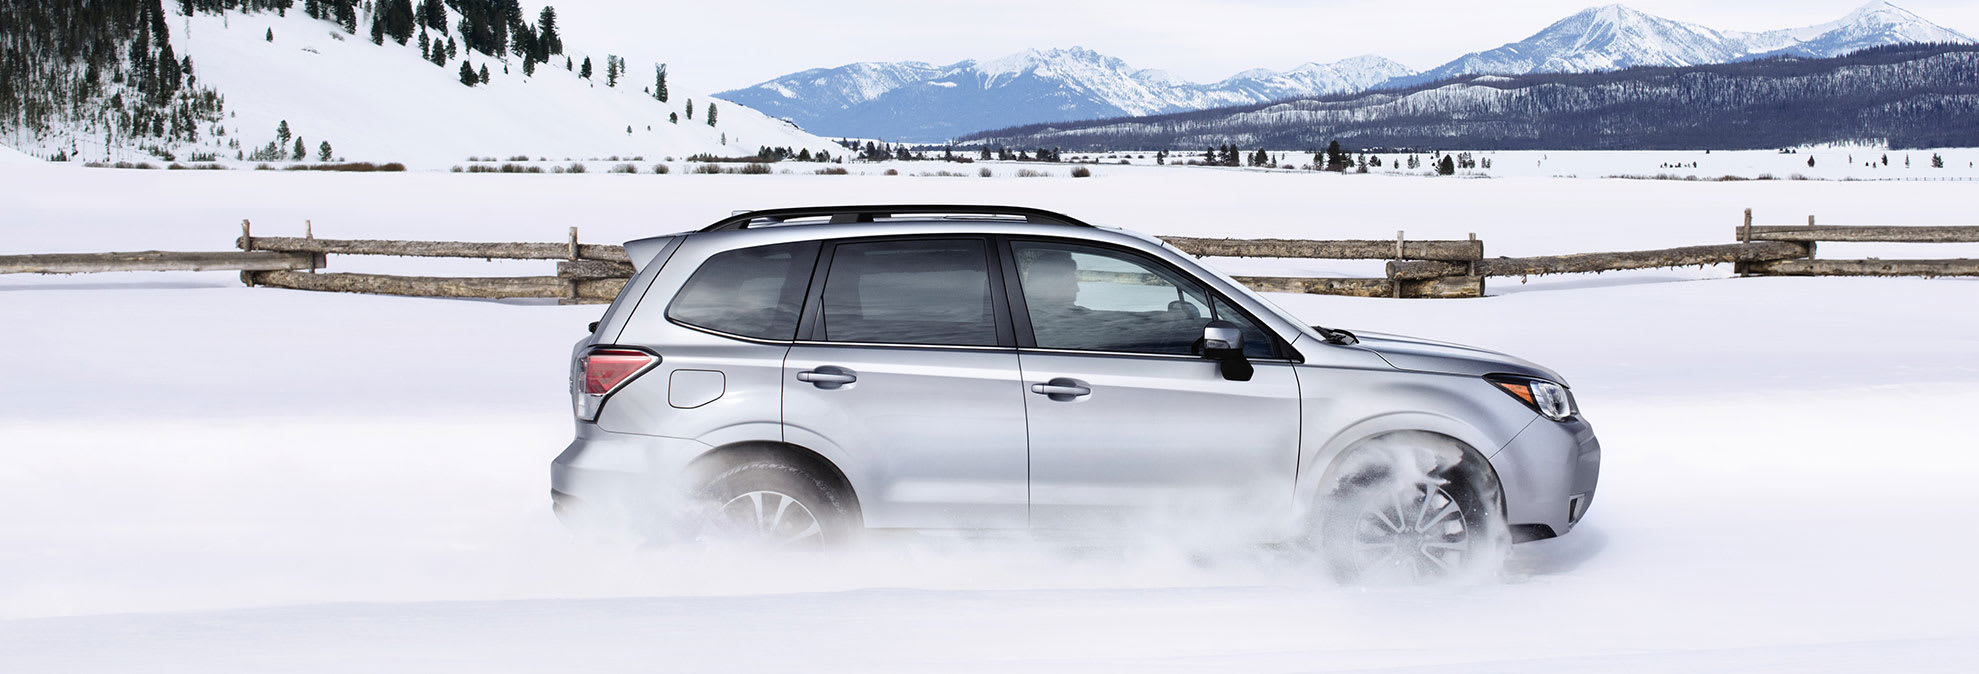 Best New Cars For Ice And Snow For The Money